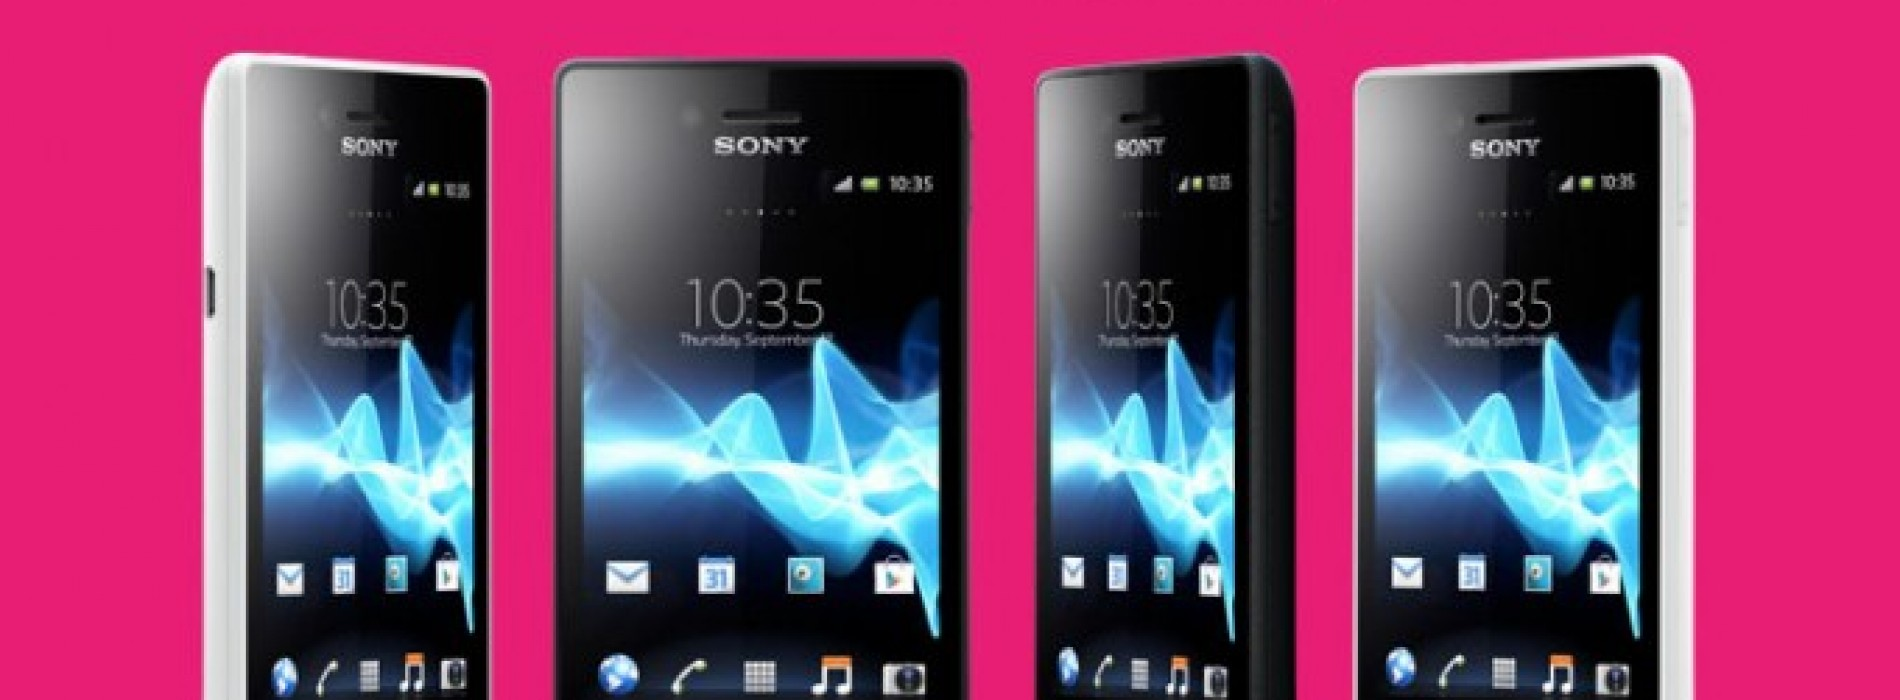 New Xperia Miro announced by Sony